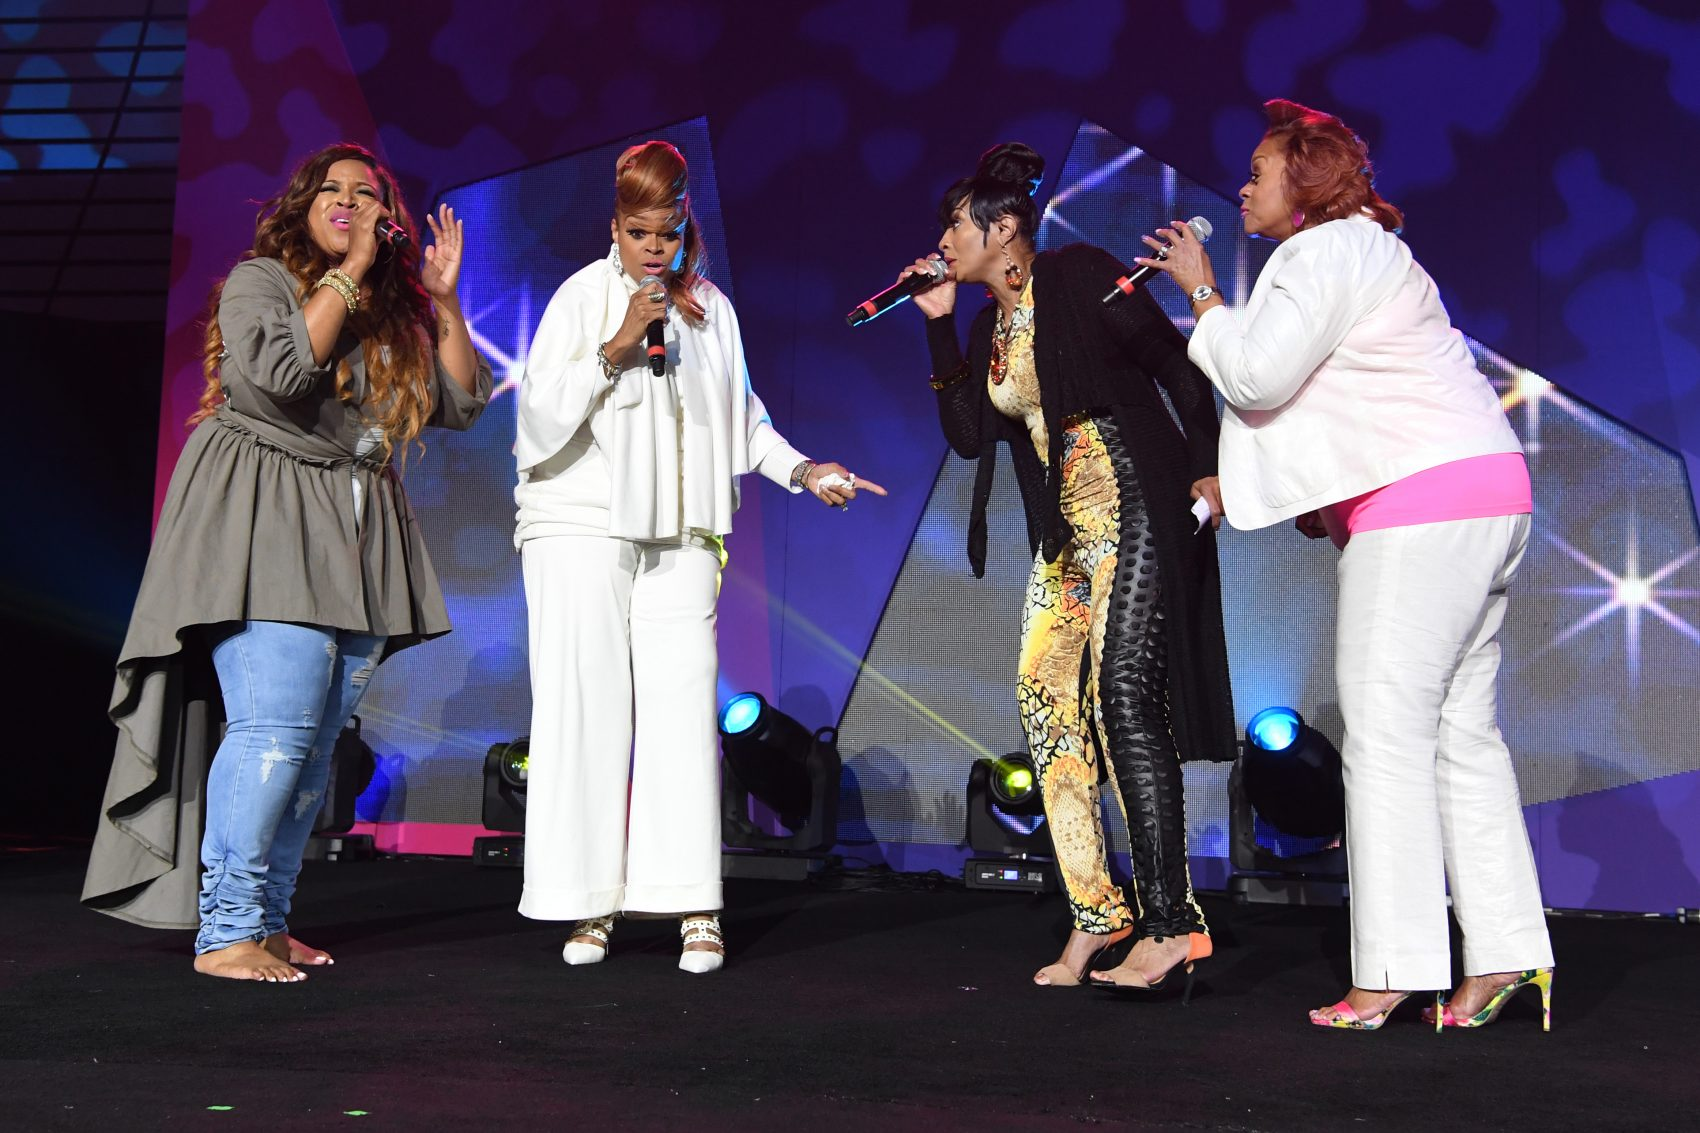 Kierra Sheard, Karen Clark Sheard, Dorinda Clark-Cole and Jacky Clark-Chisholm from The Clark Sisters perform onstage during the Tribute Finale at the 2016 Essence Festival Presented By Coca-Cola at Ernest N. Morial Convention Center on July 3, 2016 in New Orleans, La. (Paras Griffin/Getty Images for 2016 Essence Festival)